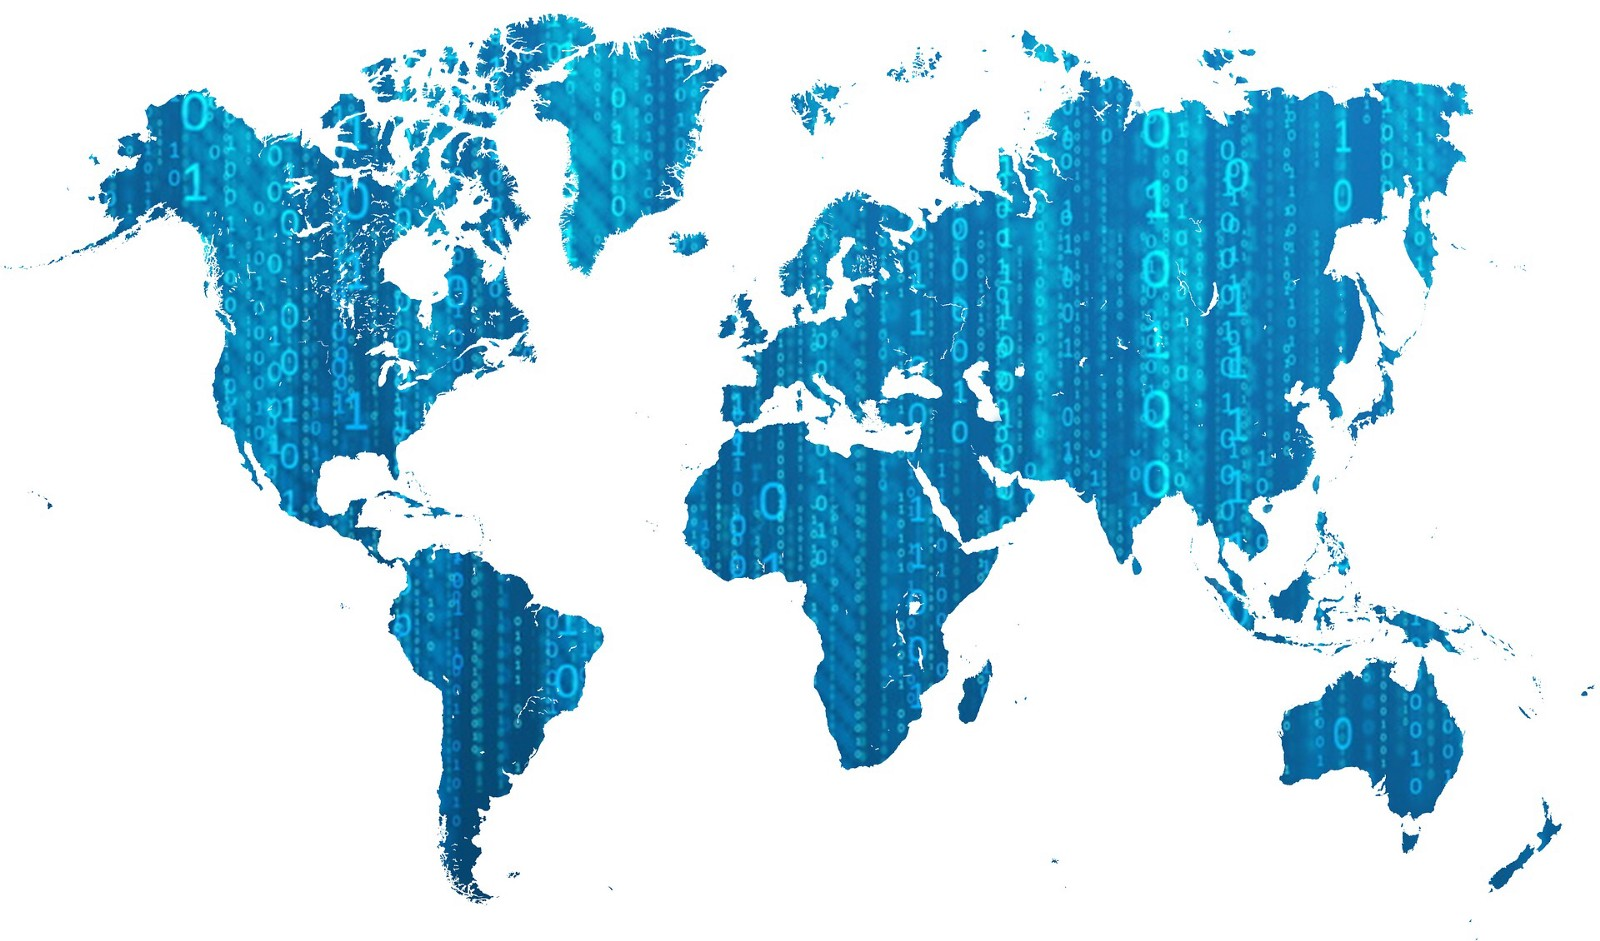 /easily-getting-a-users-country-currency-timezone-or-language-from-their-ip-address-5124ea4bba0e feature image